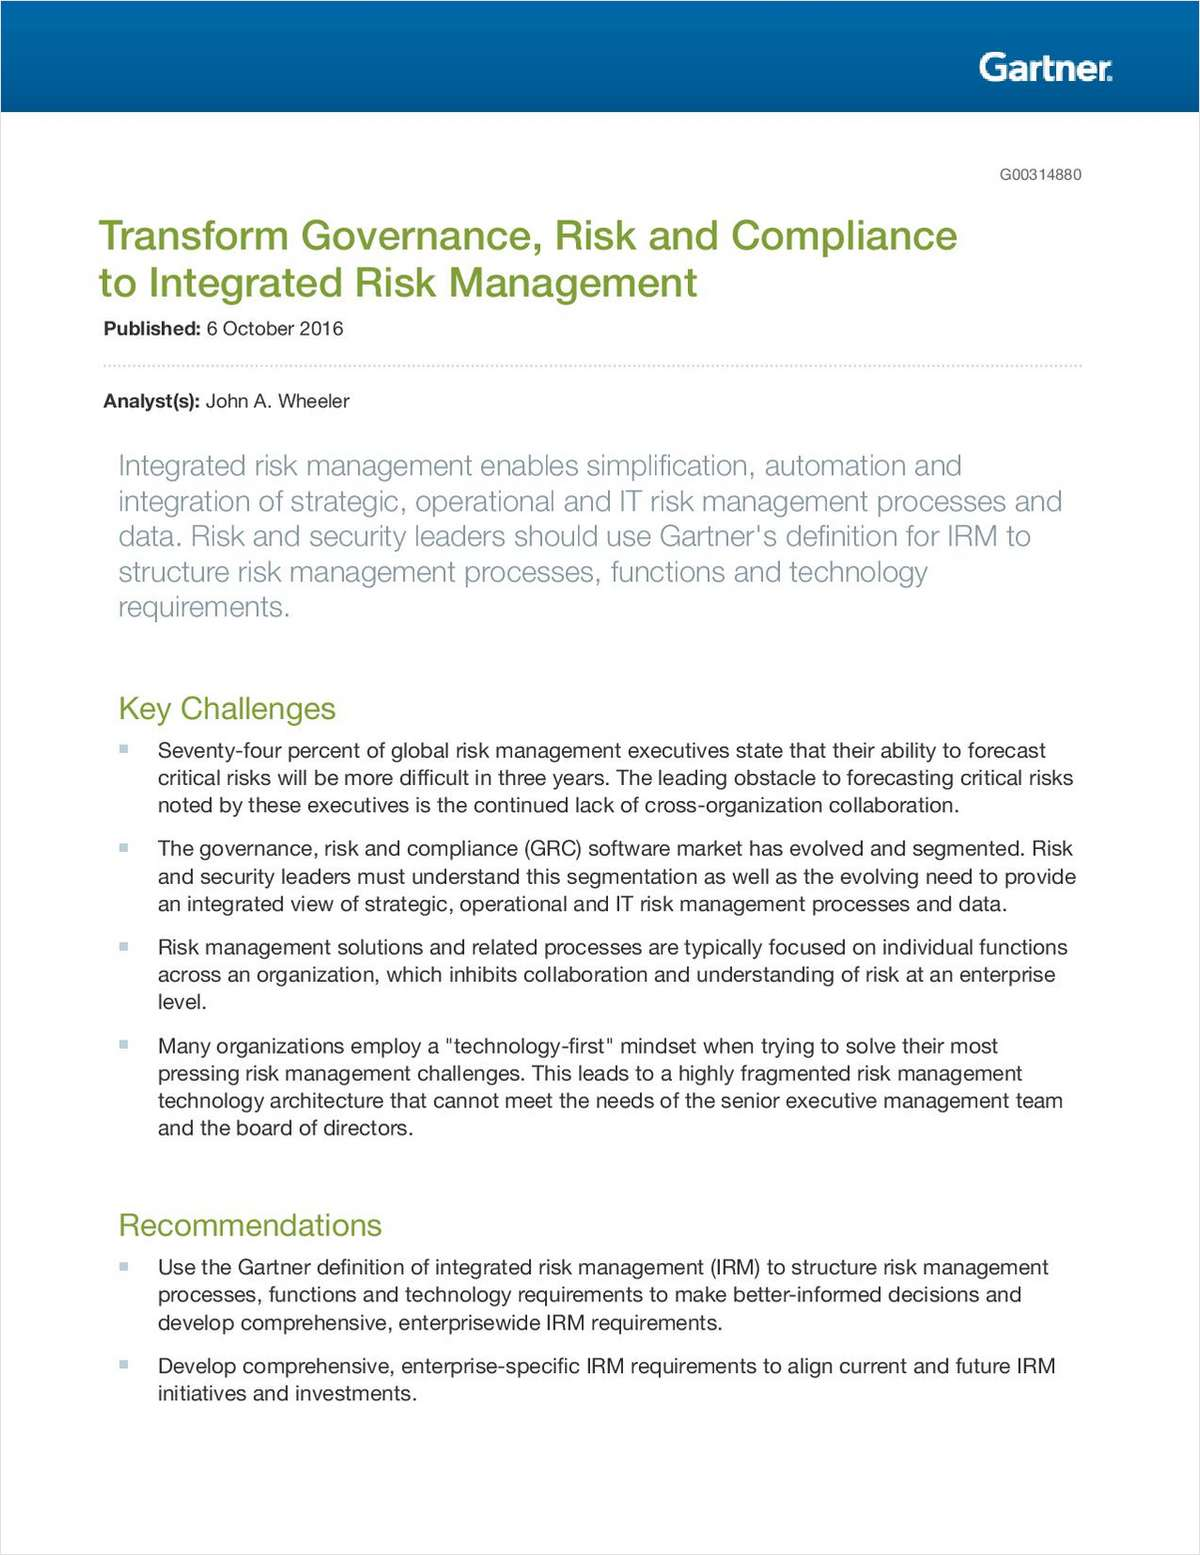 Transform Governance, Risk and Compliance to Integrated Risk Management